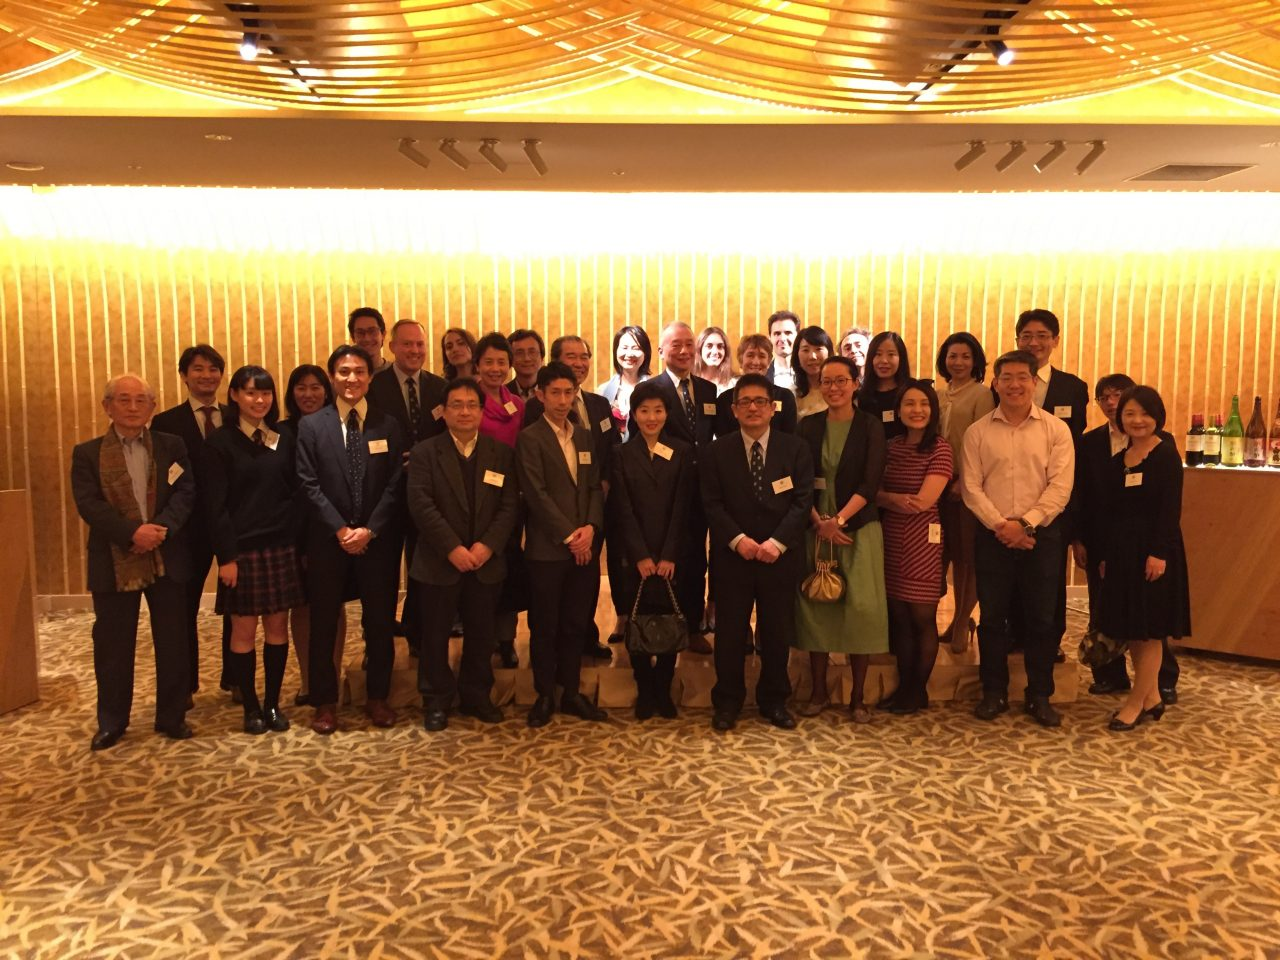 Professor Denise Lievesley hosts an alumni reception in Tokyo as part of the University of Oxford's Meeting Minds in Asia Alumni Weekend, 22 March 2019